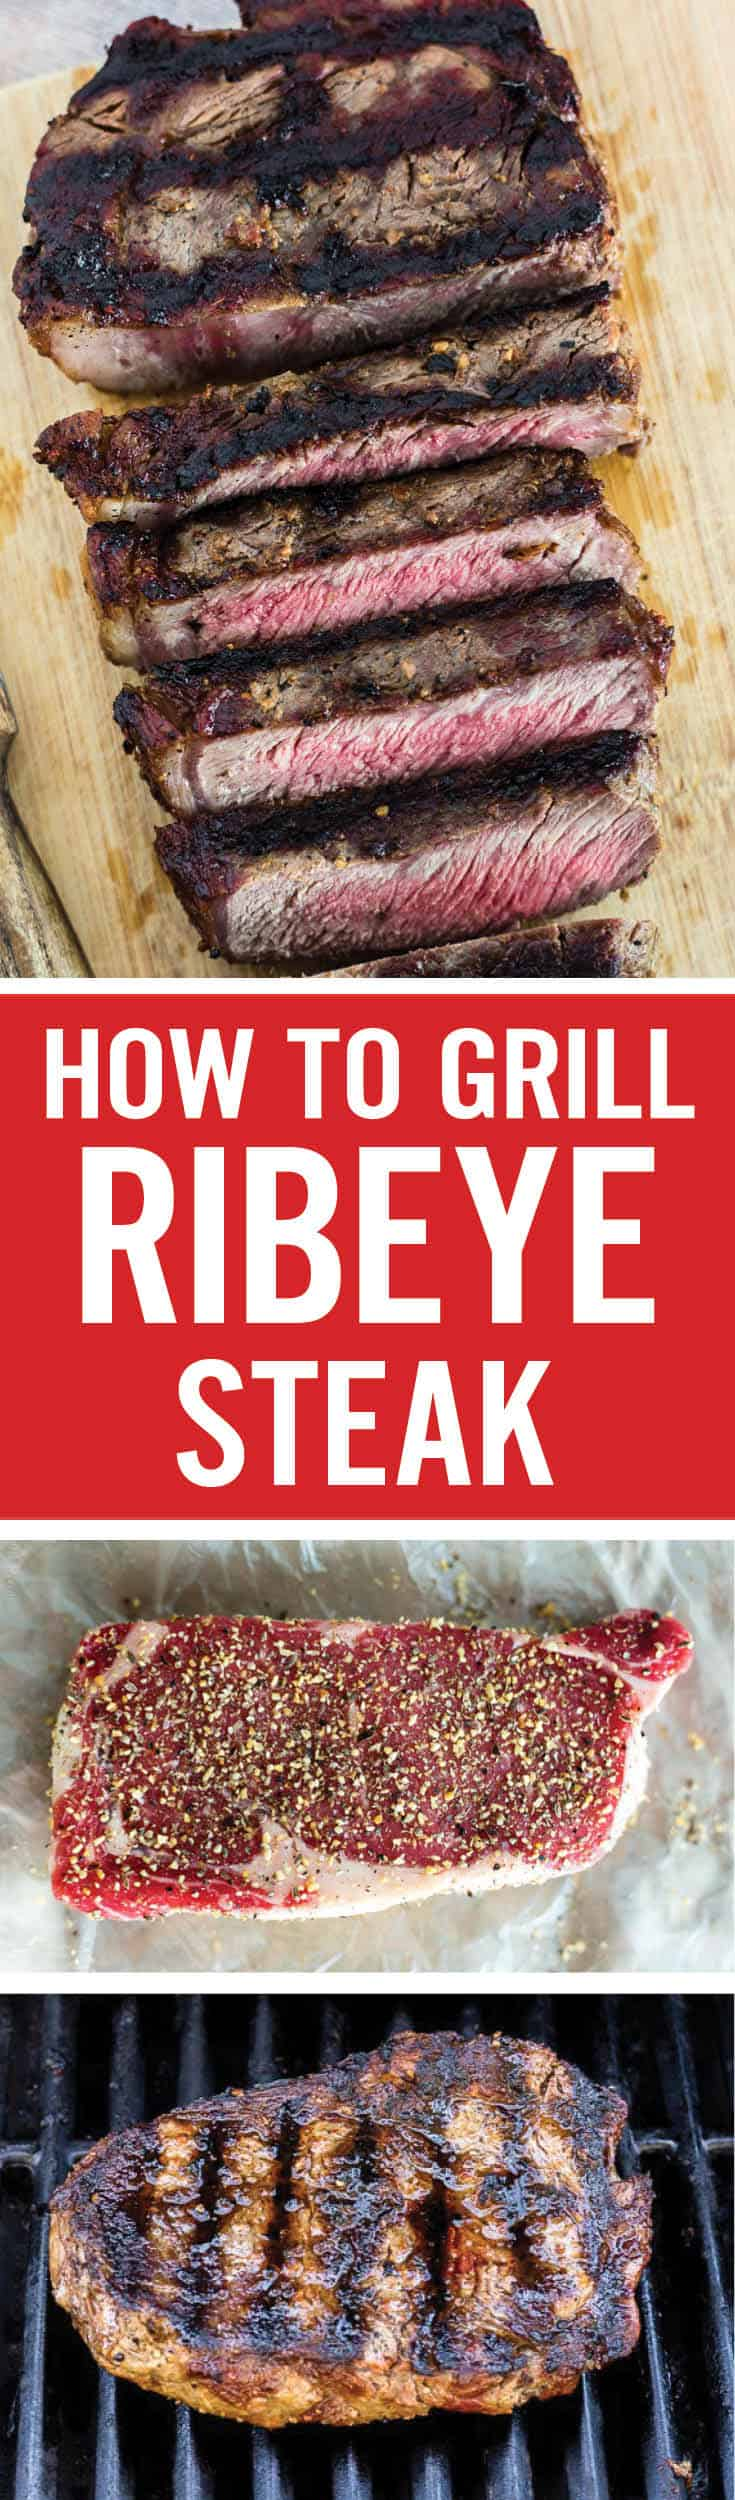 Learn how to grill ribeye steak that is juicy and tender, with perfect sear marks on the outside. Follow these simple tips to cook the best ribeye steak on a gas grill. Everything from how to season, how long to rest, and safe cooking temps is covered. #ribeye #grilledribeye #grilledsteak